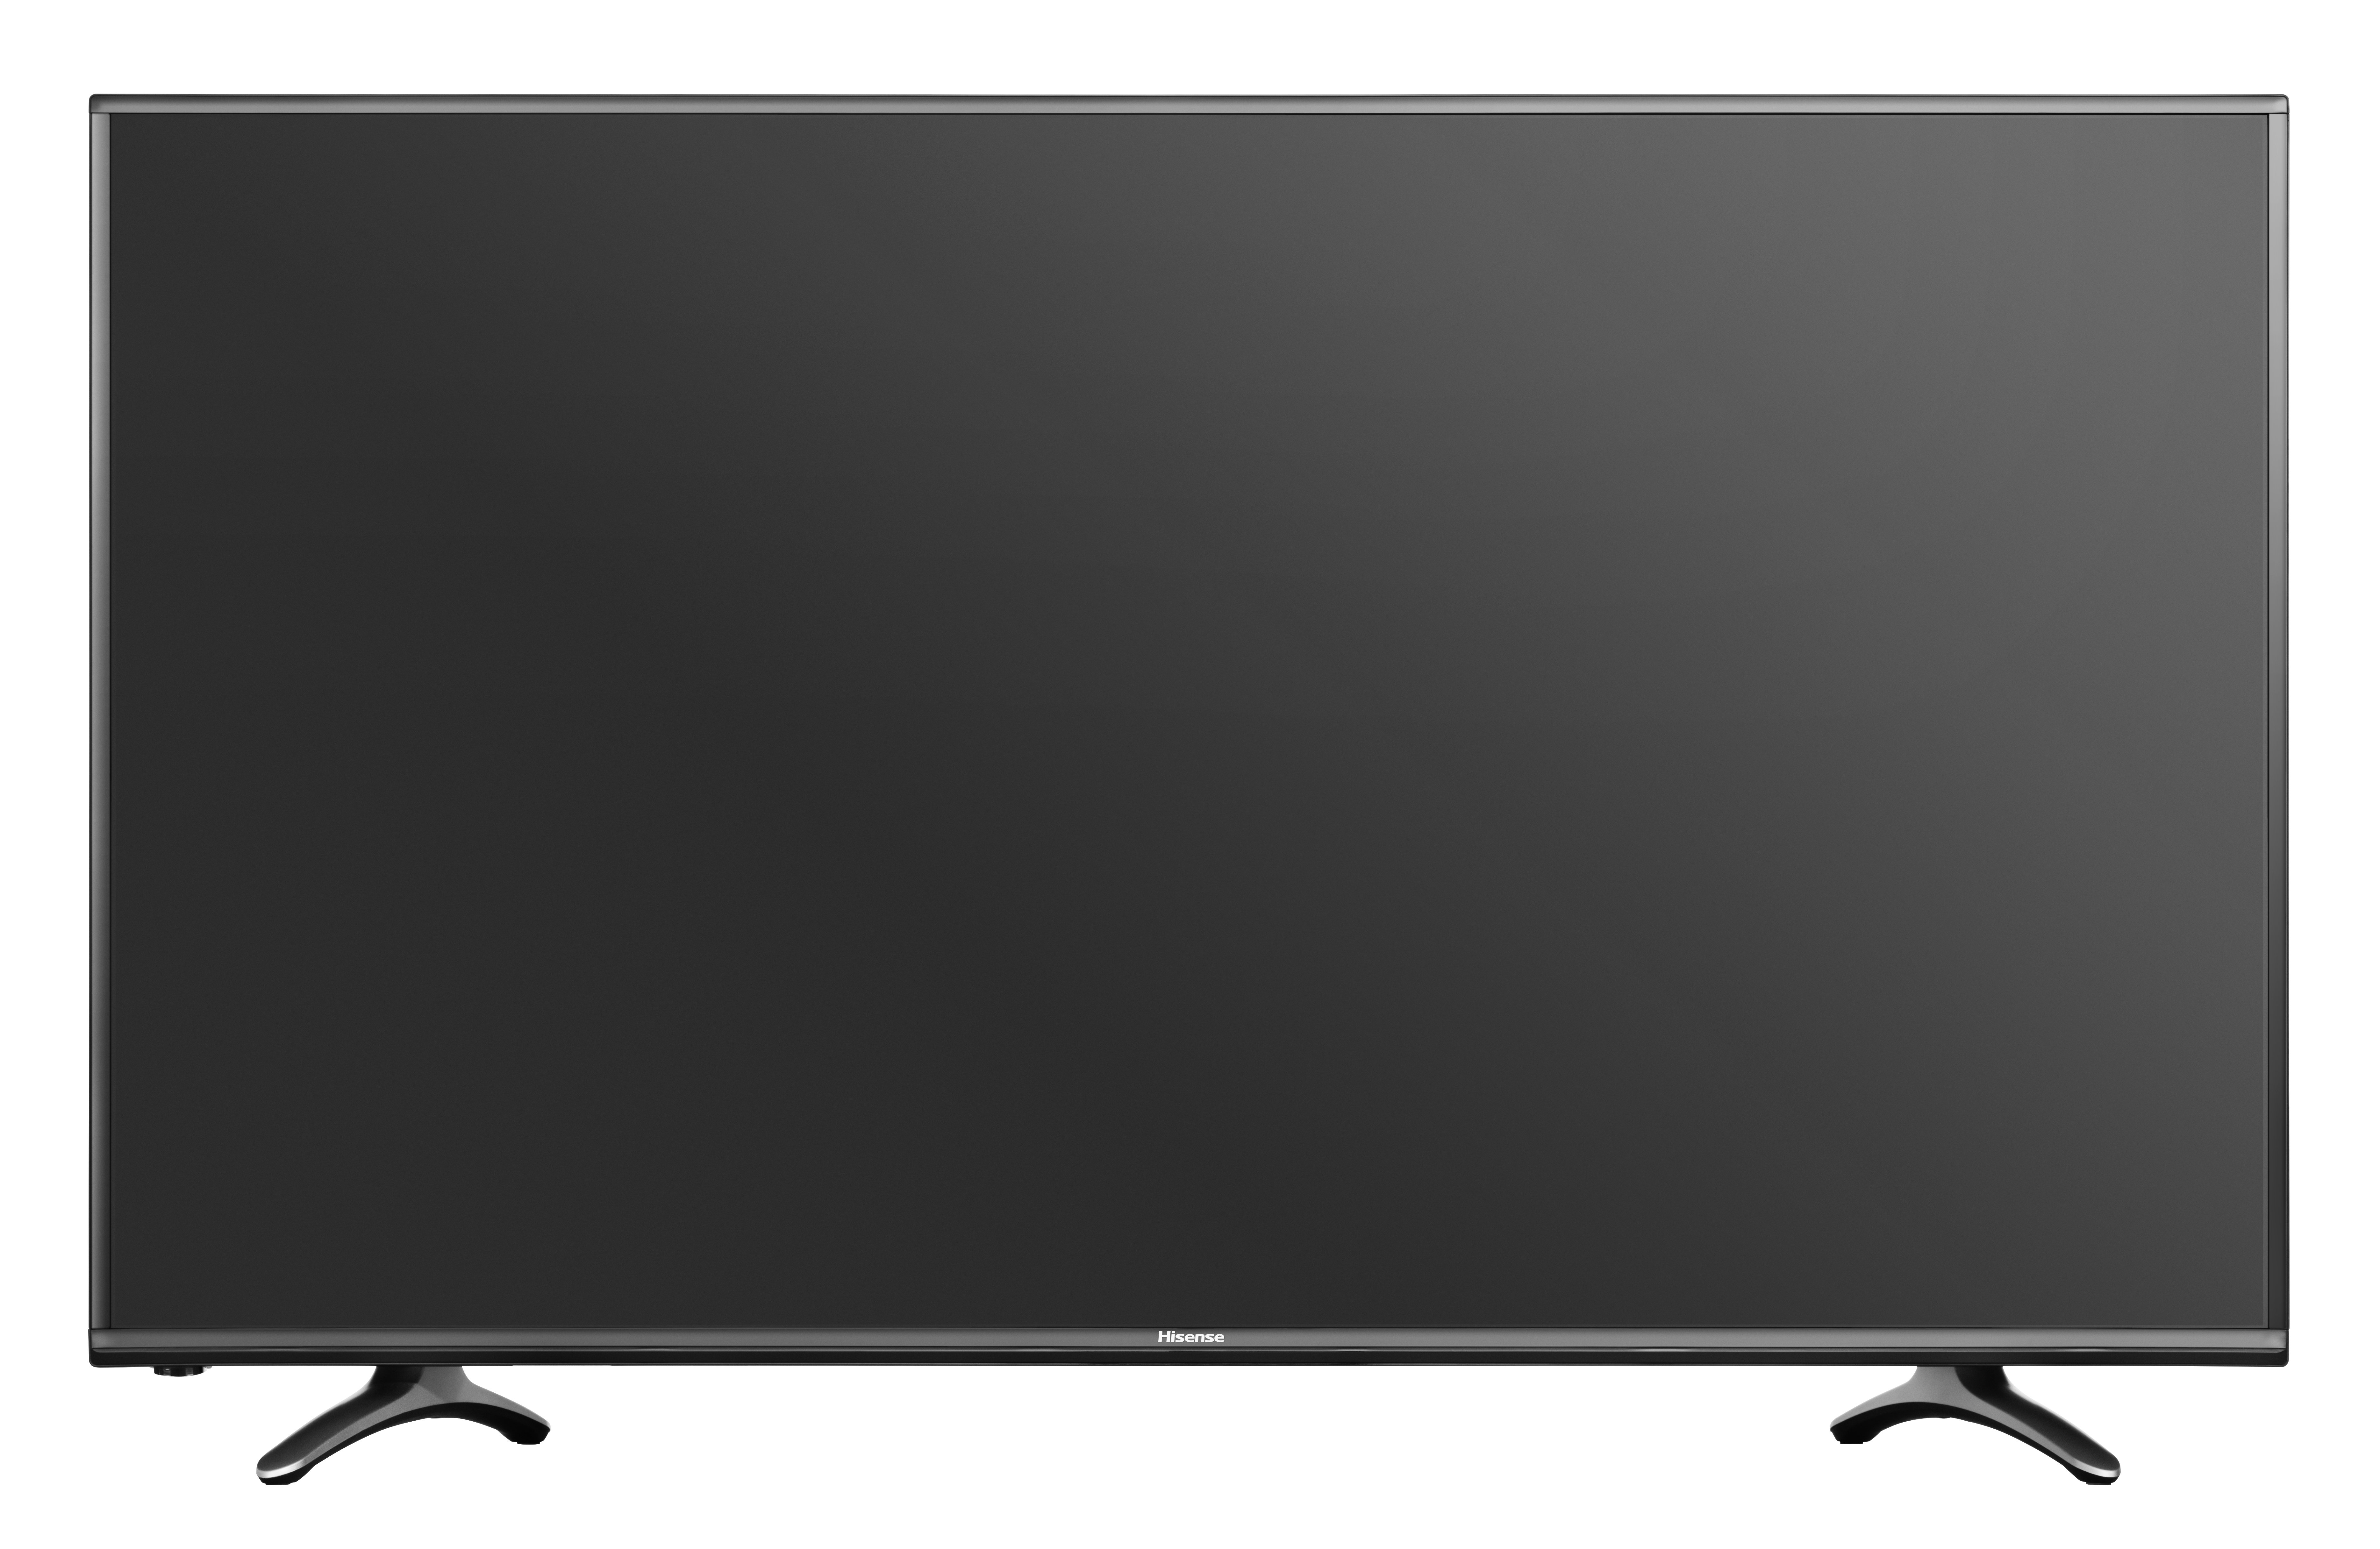 new hisense 50n4 50 inch 127cm smart full hd led lcd tv picclick au. Black Bedroom Furniture Sets. Home Design Ideas